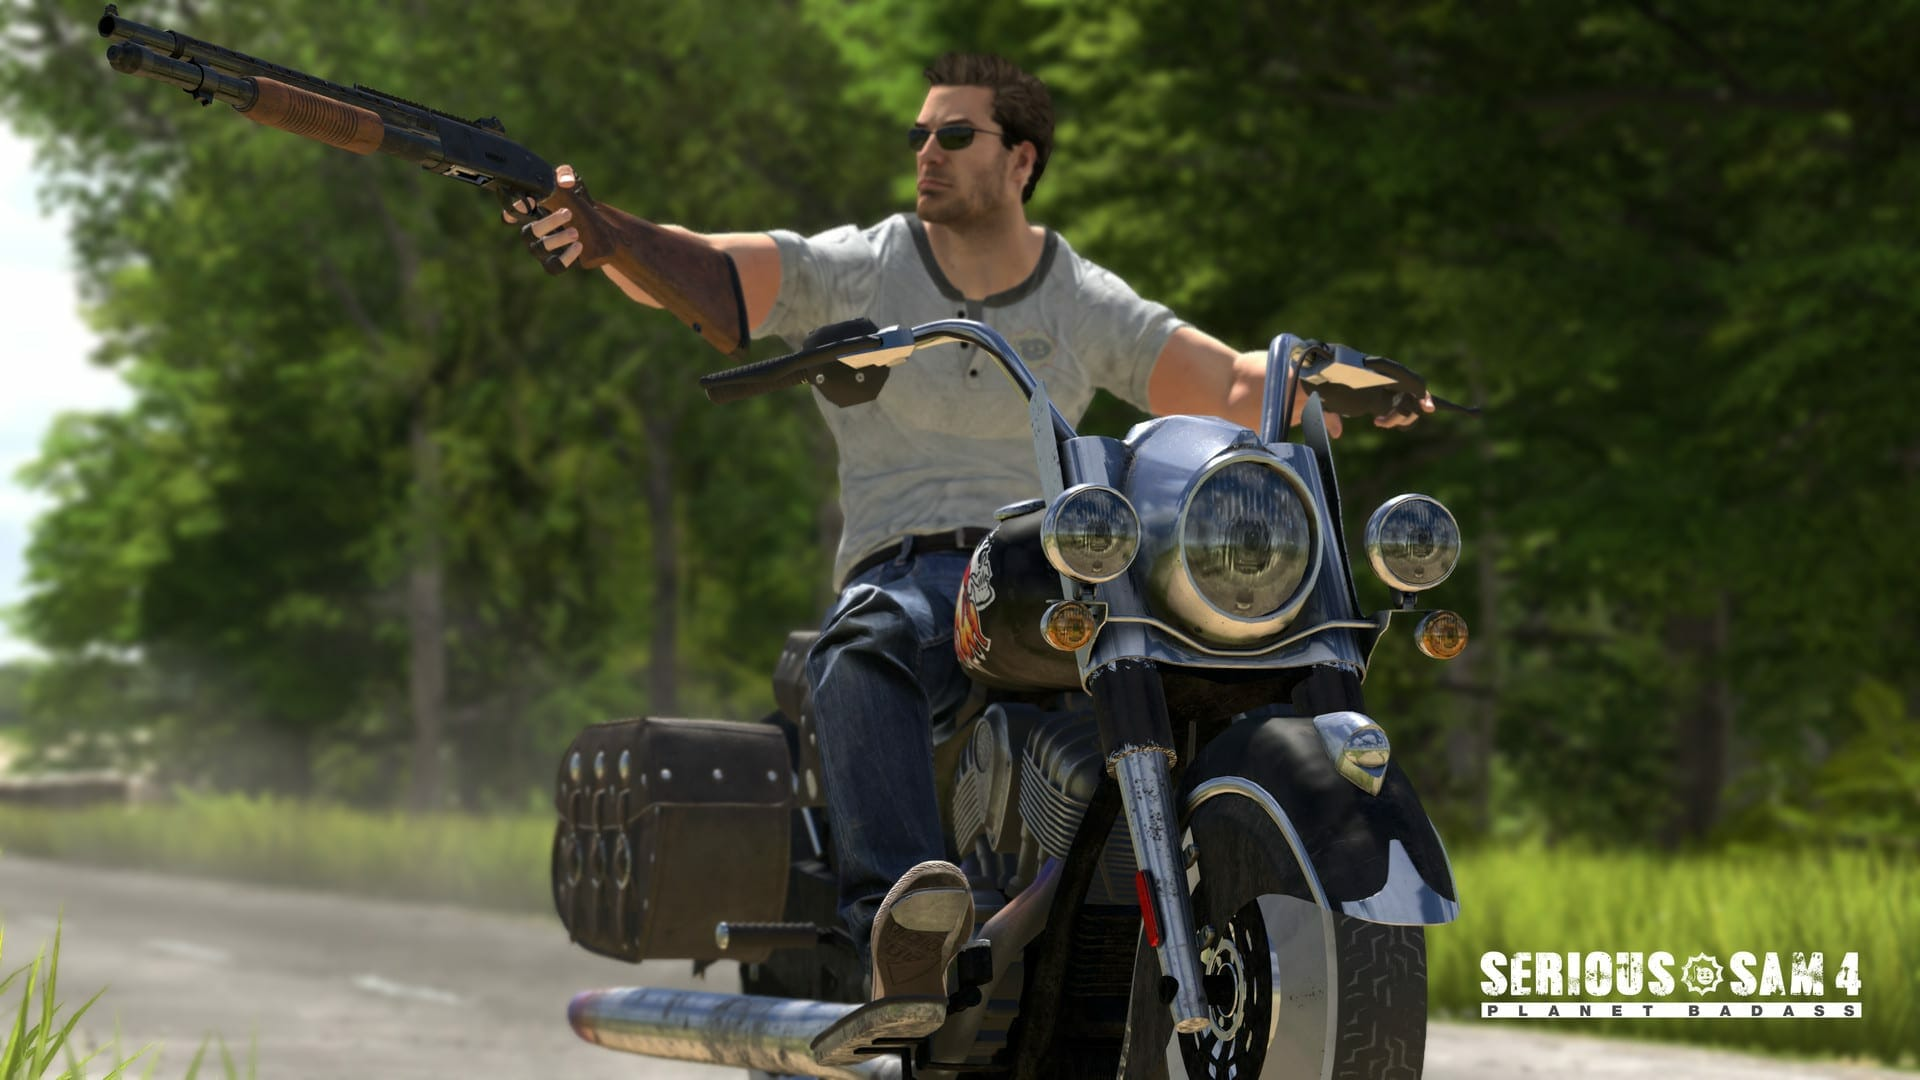 Serious Sam 4: Planet Badass Finally Announced by Croteam and Devolver Digital